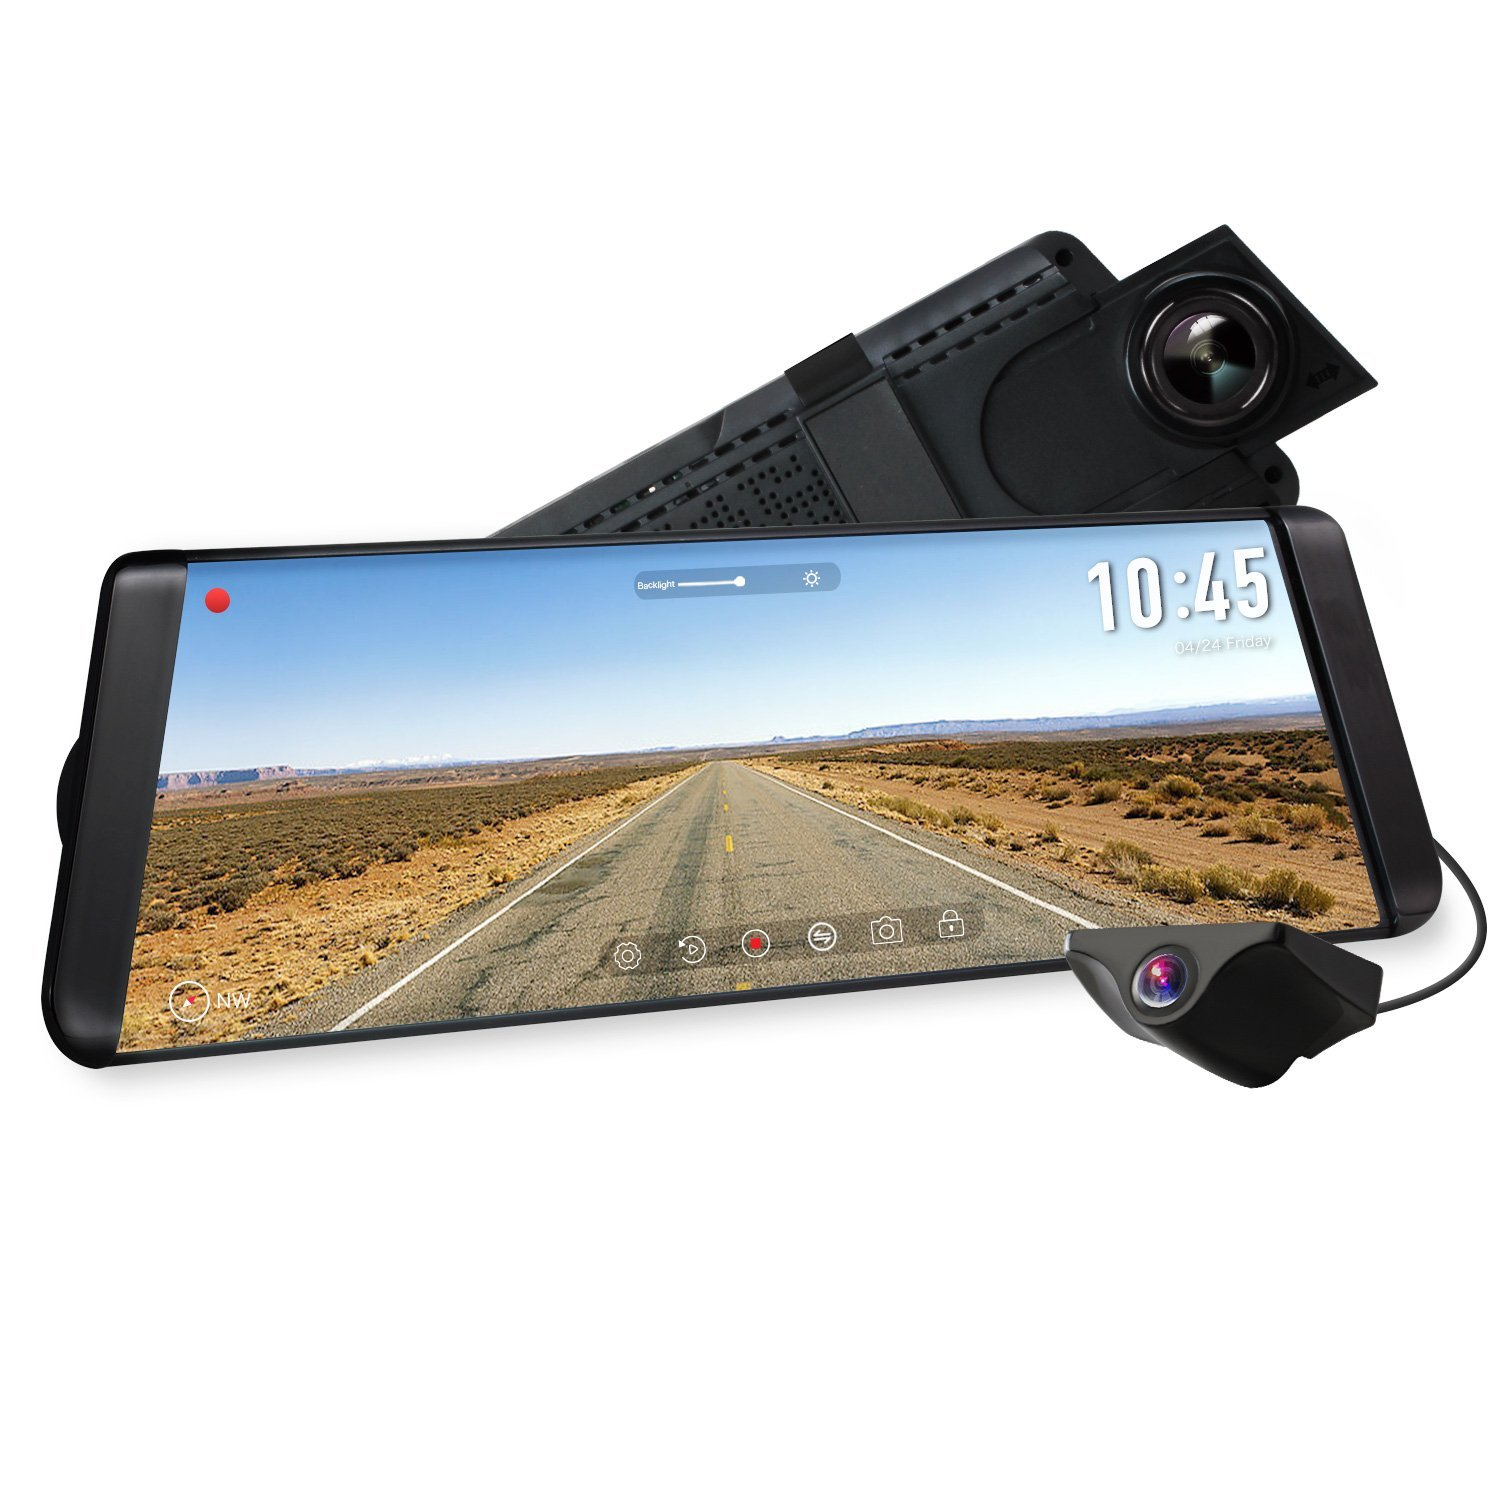 Fitnessmatte Test Auto Vox X2 Dashcam Im Test New Tec Test